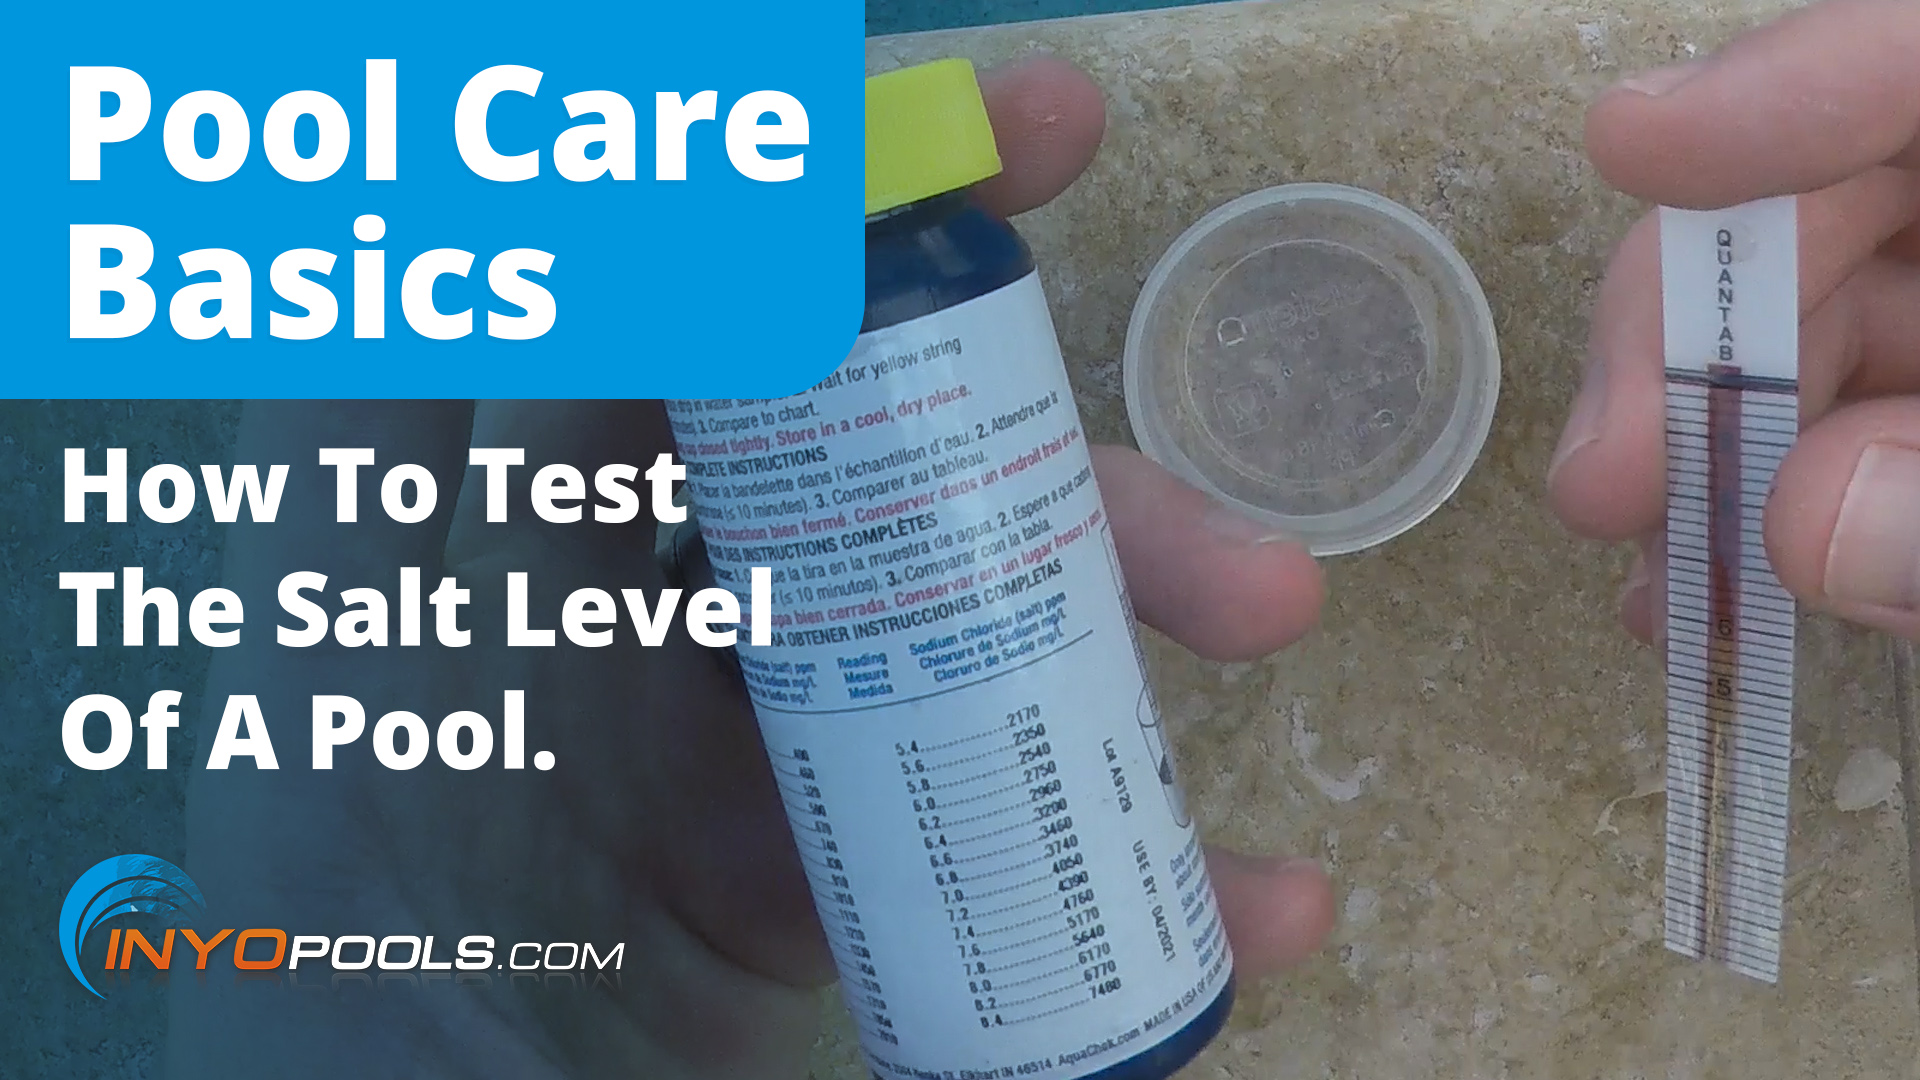 Test The Salt Level Of A Pool